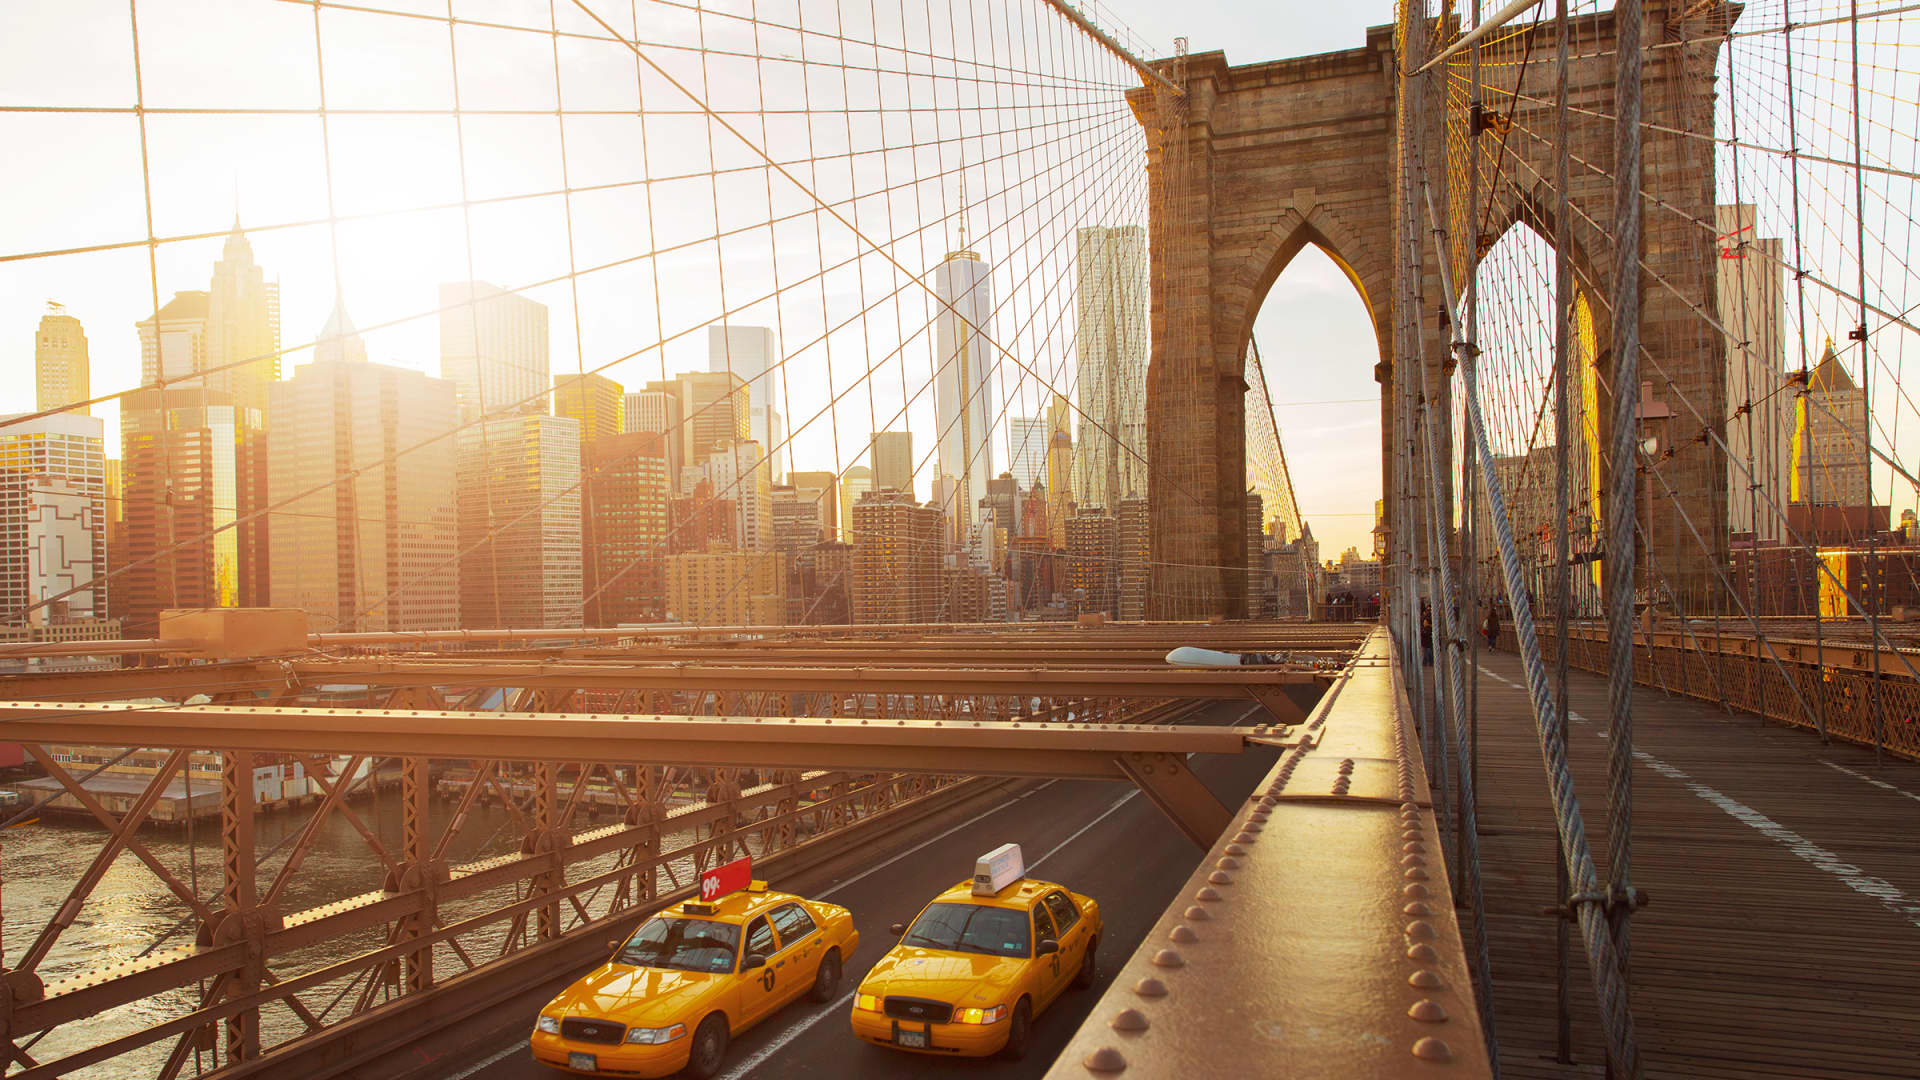 New York City and its borough of Brooklyn both placed among the most expensive U.S. destinations. Pictured, the Brooklyn Bridge and lower Manhattan.